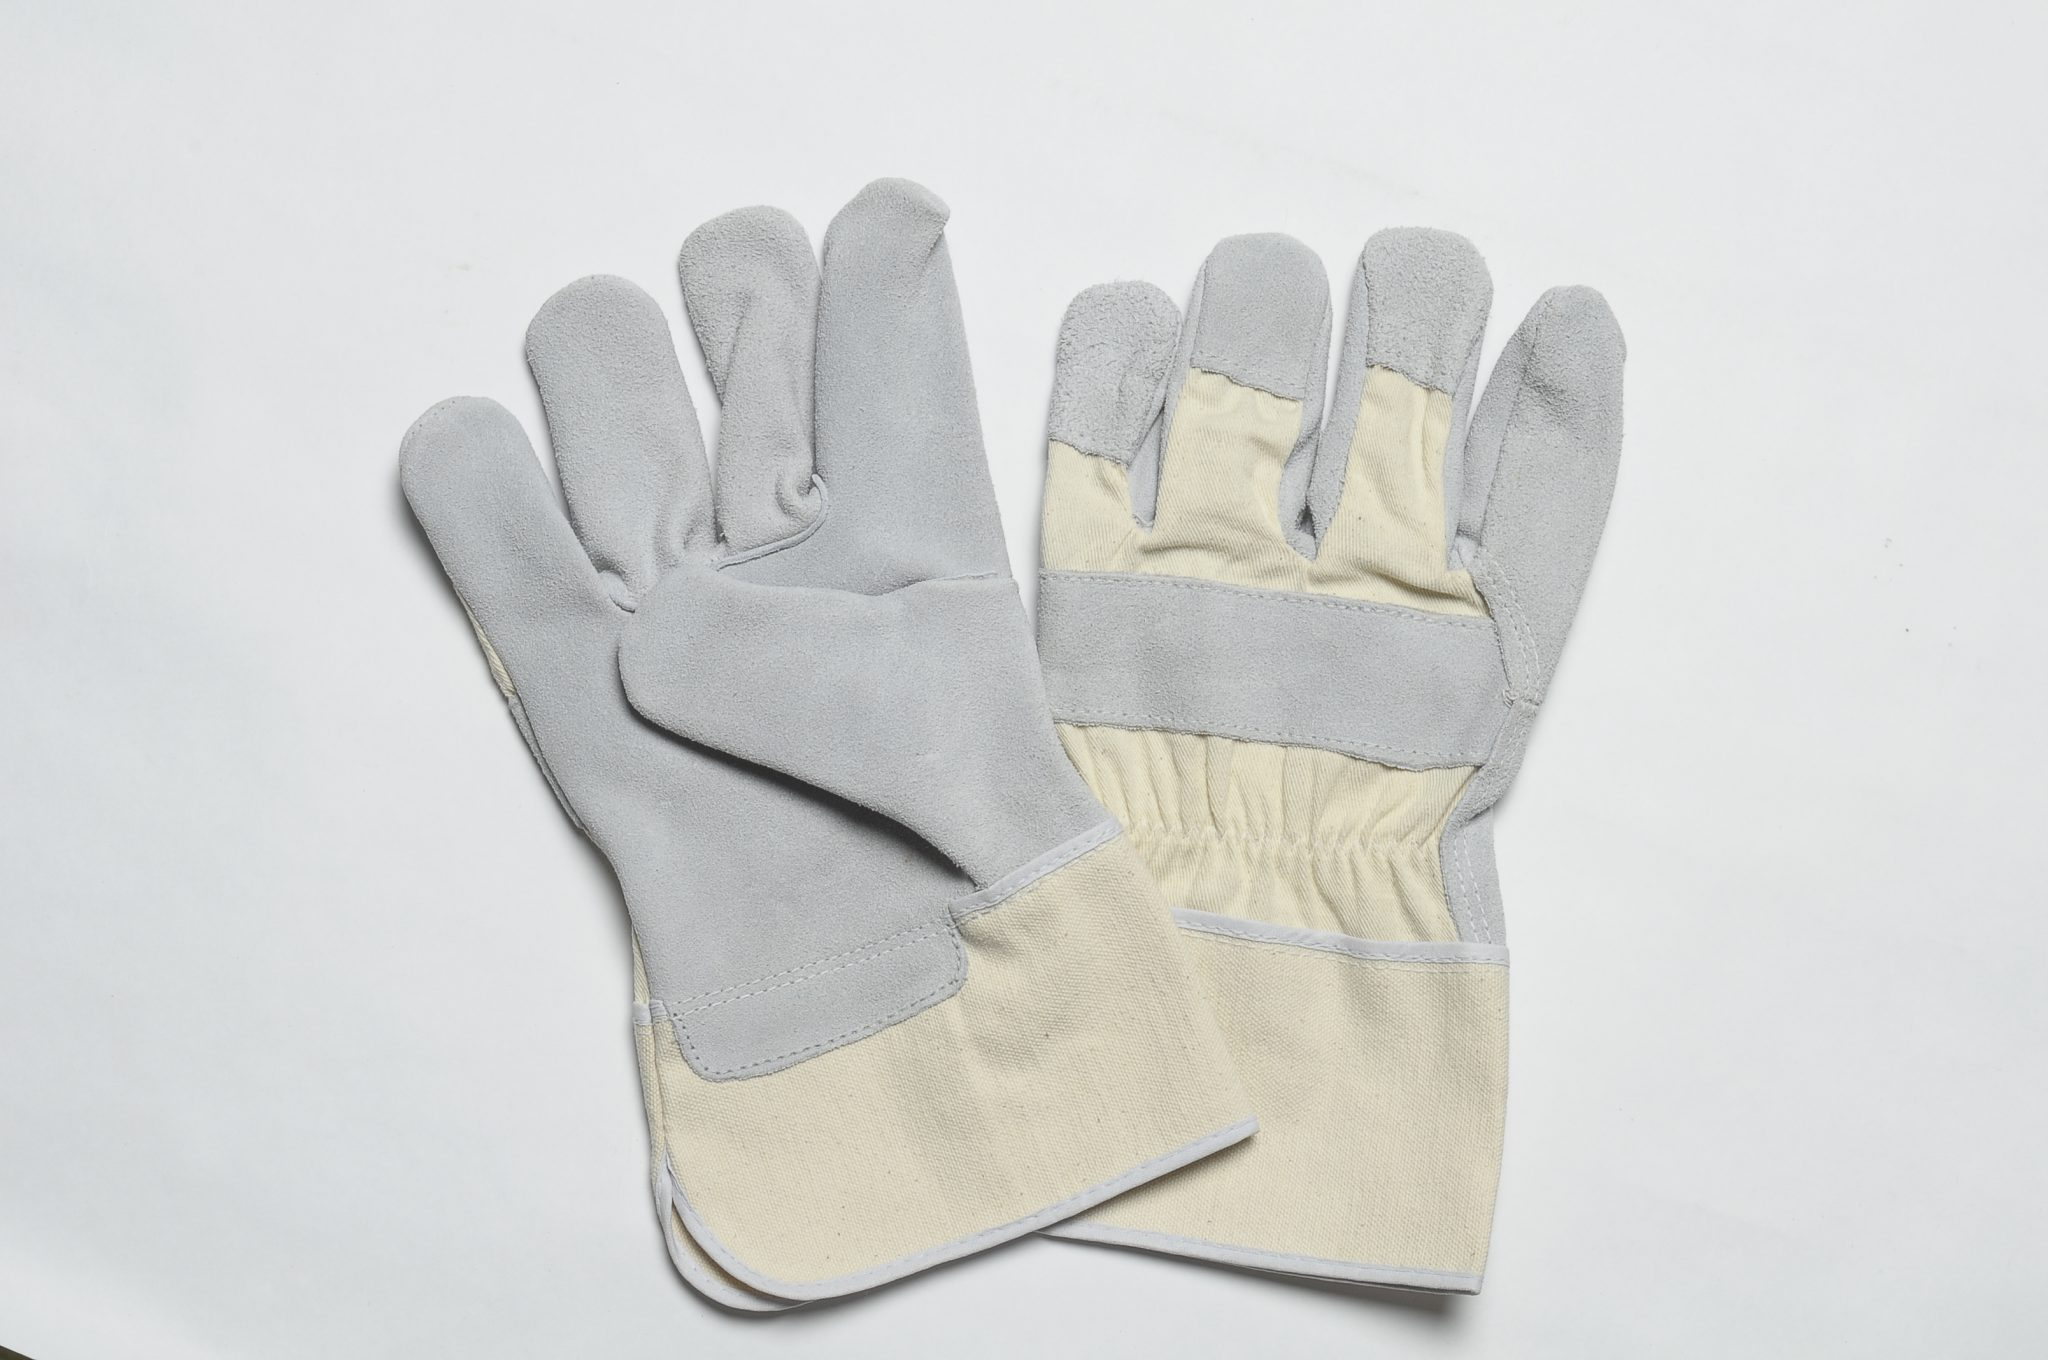 NATURAL SPLIT GLOVES. FLANNEL LINER IN THE PALM. WHITE CANVAS CUFF & BACK, ADJUSTABLE ELASTIC IN THE WRIST.